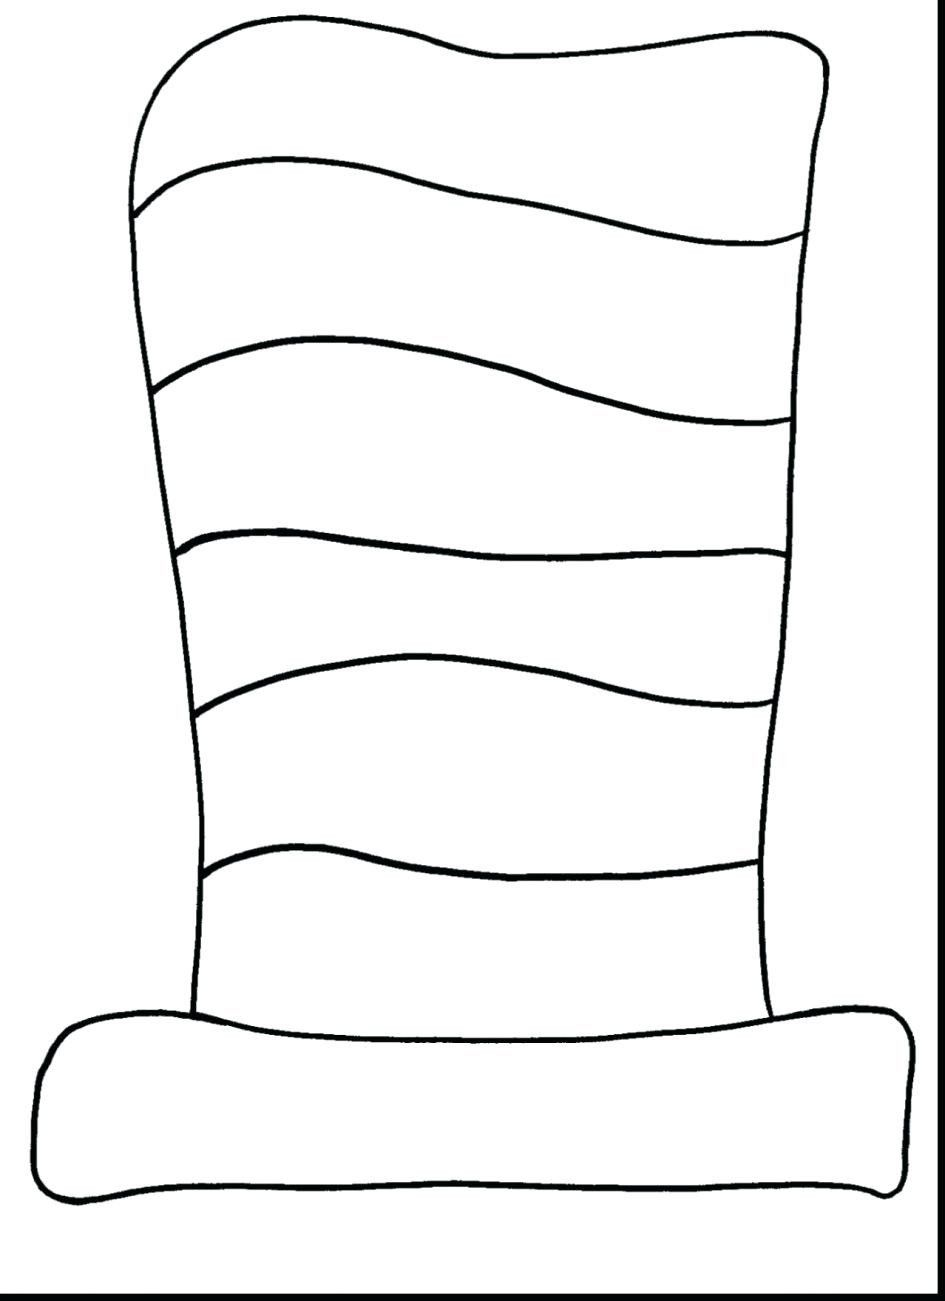 Cat In The Hat Coloring Pages Best Of Stylish Decoration Cat In The Hat Coloring Page Home Dr Seuss Preschool Dr Seuss Hat Dr Seuss Crafts